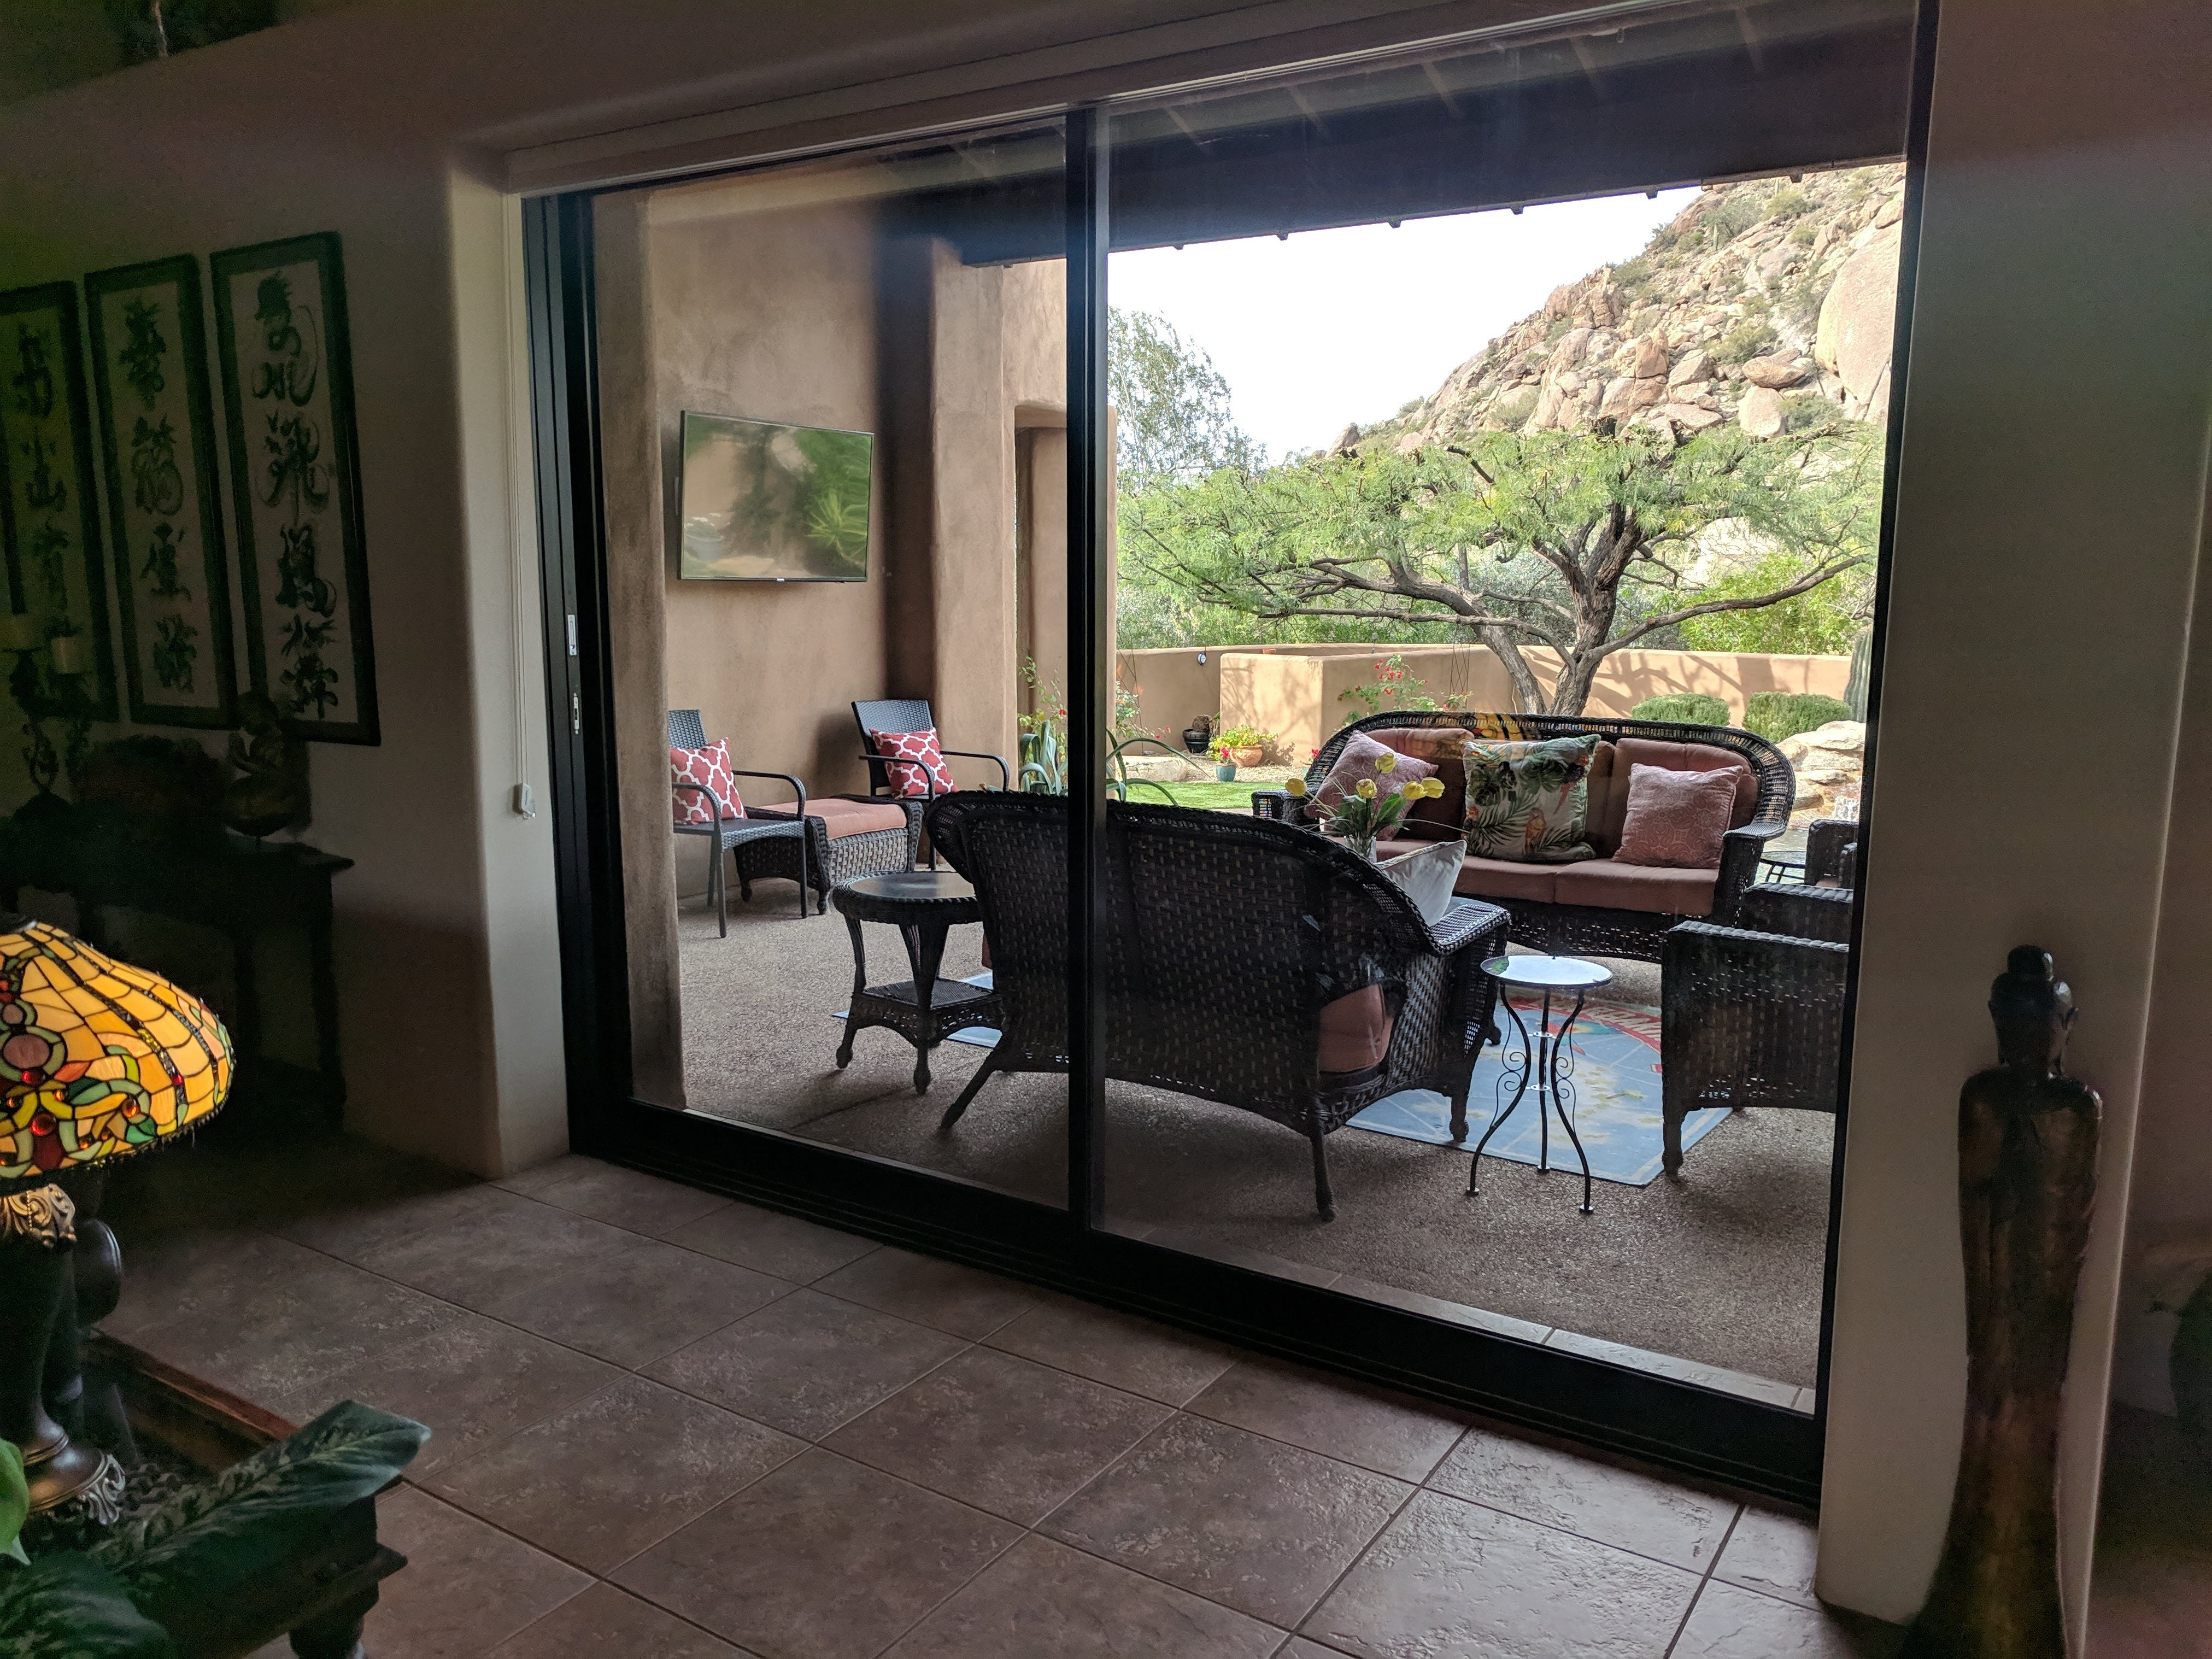 Equipped with a fireplace, this patio is the favorite spot for the Reaveses' granddaughter, as it provides a view of the rock formation she named.